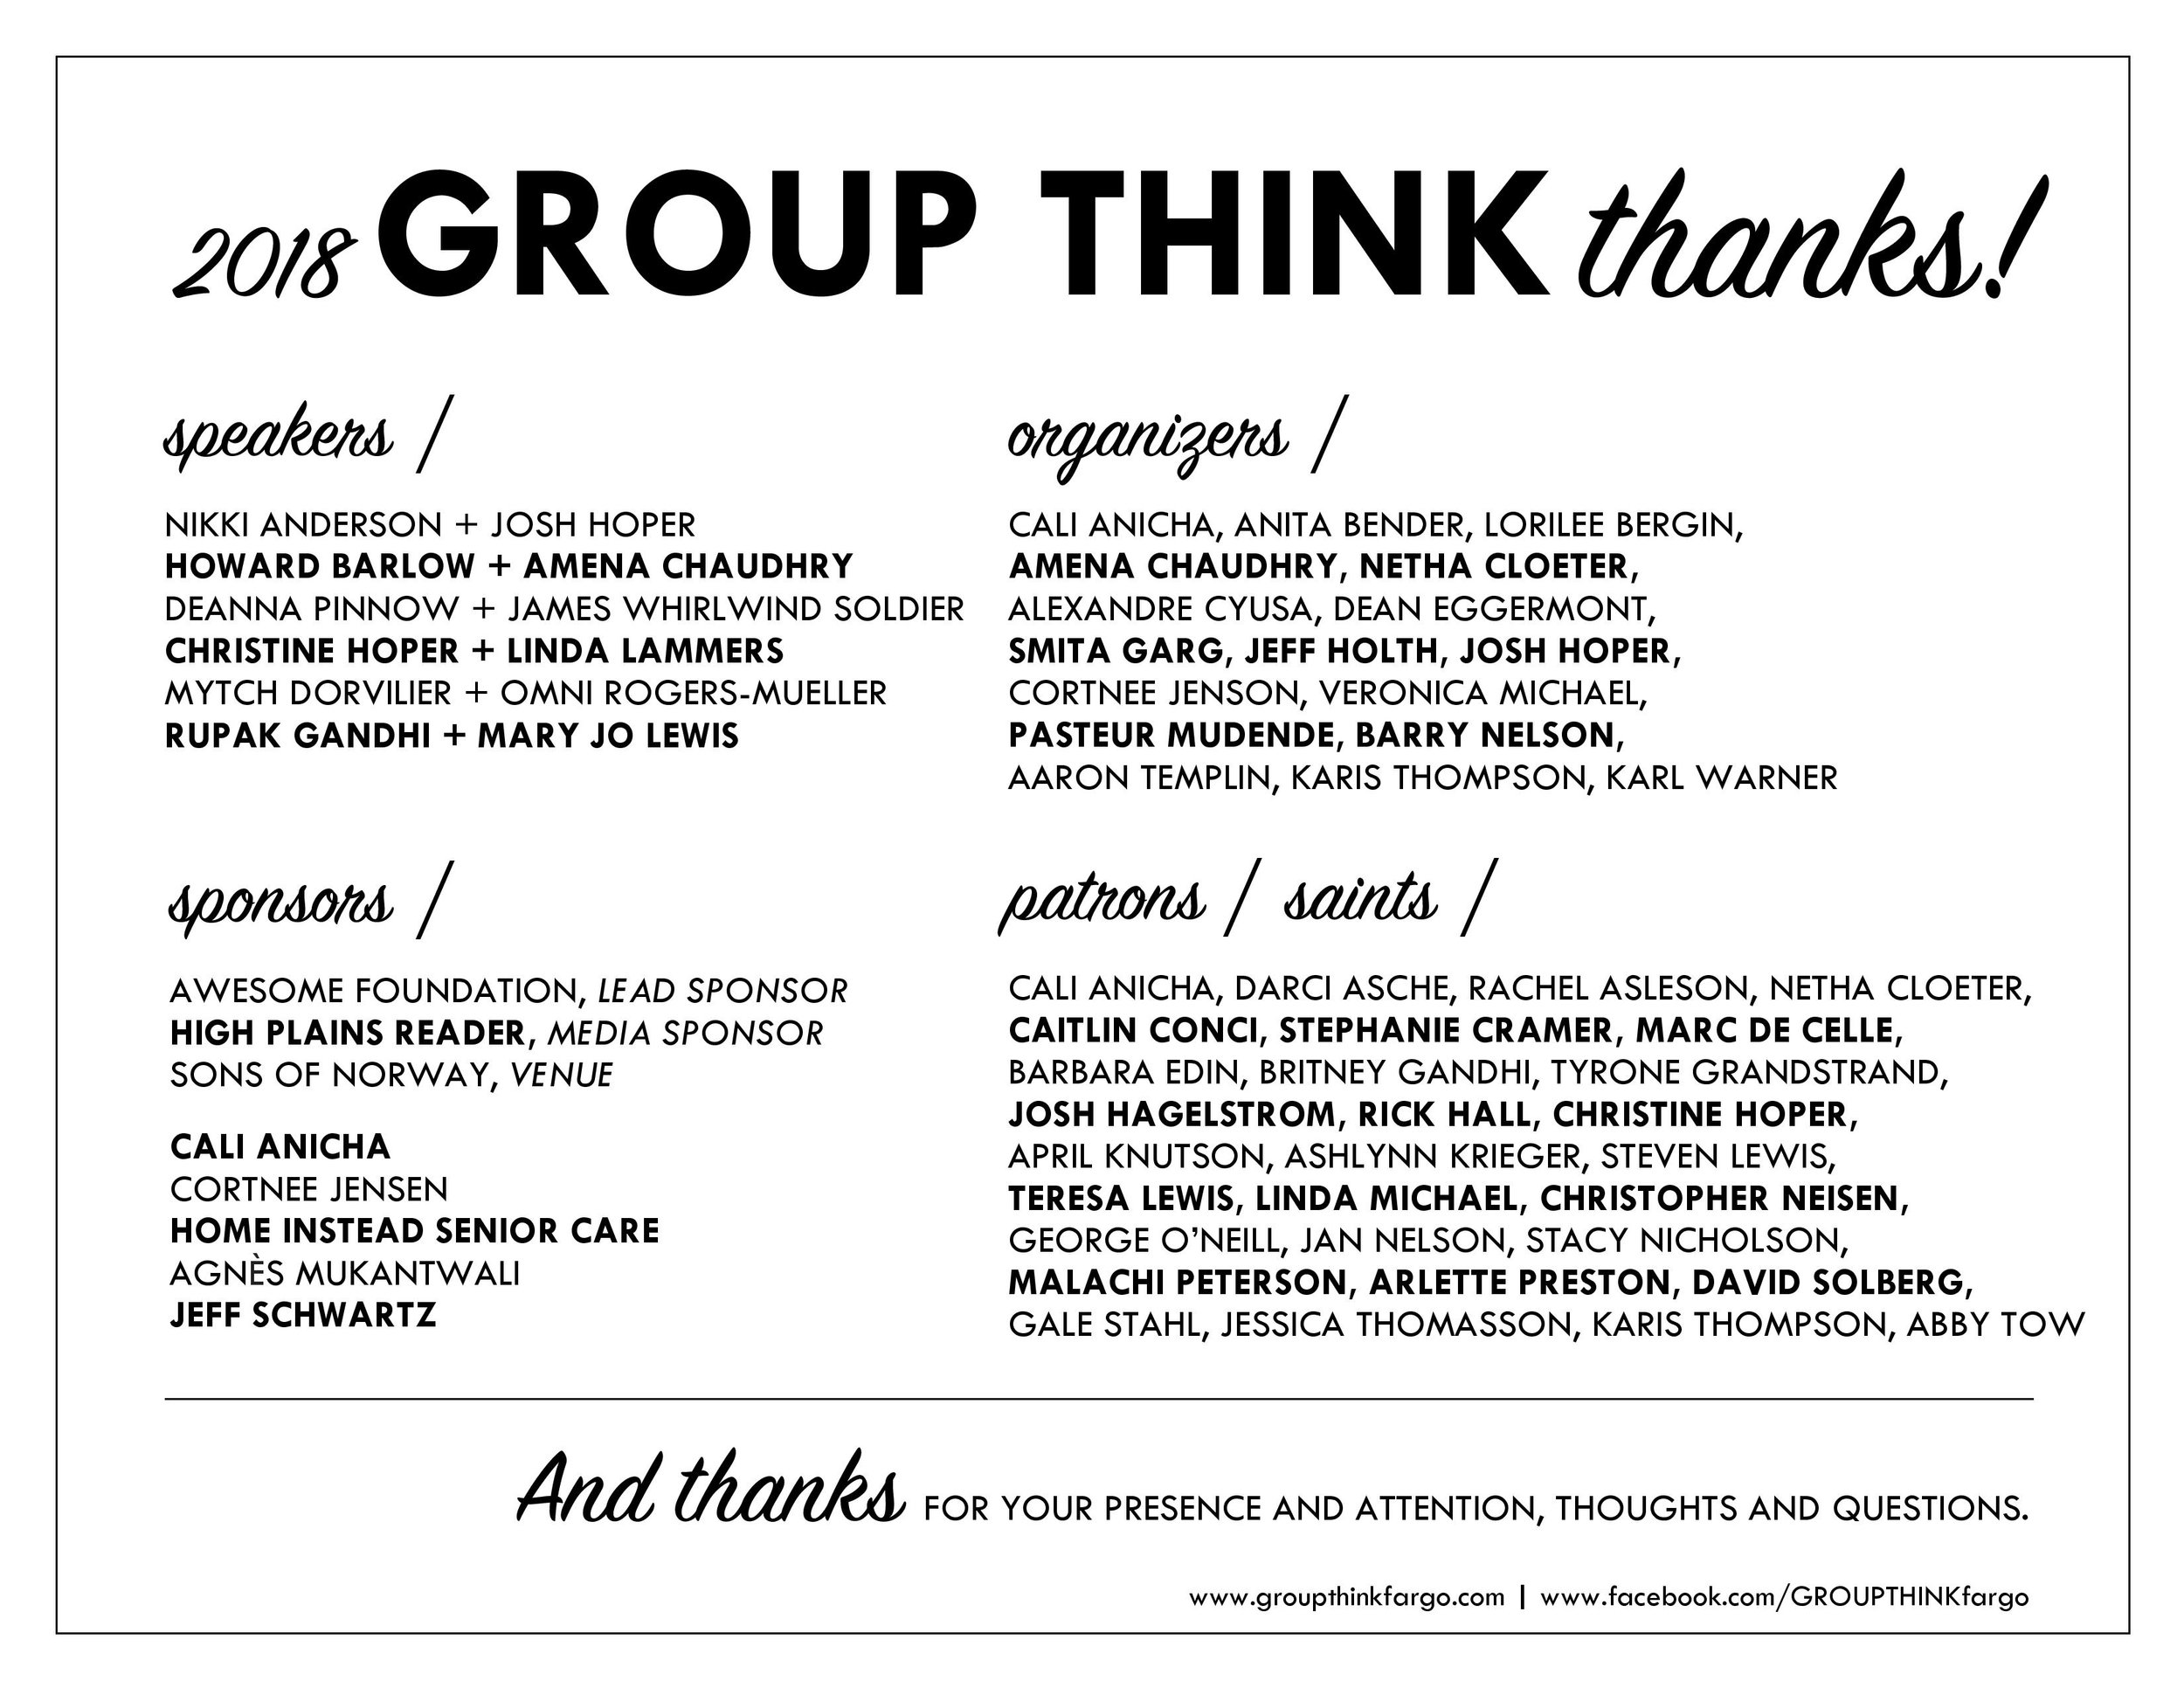 2018 GROUP THINK thanks